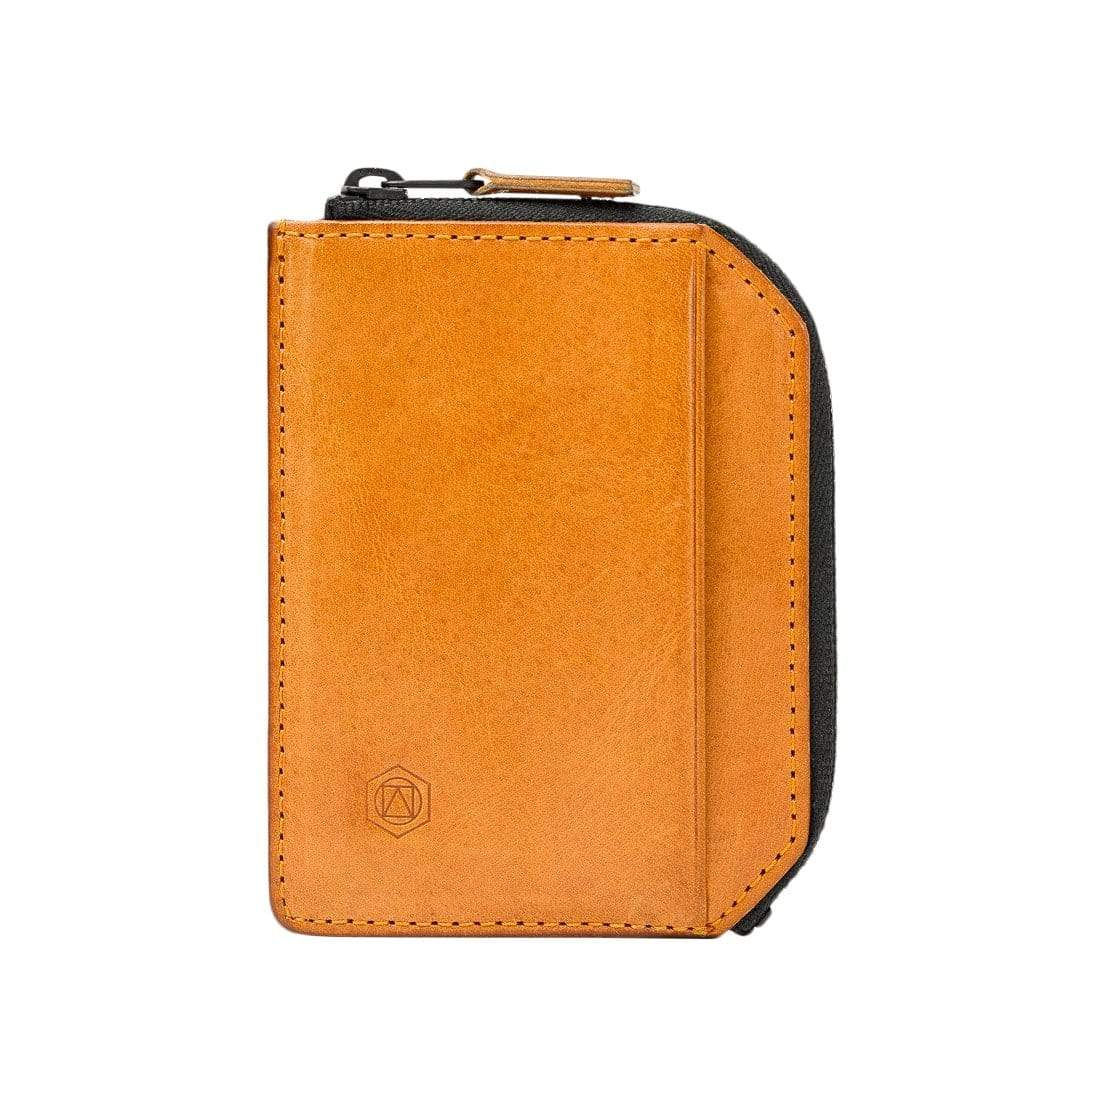 Accomplice Tanistry Wallet